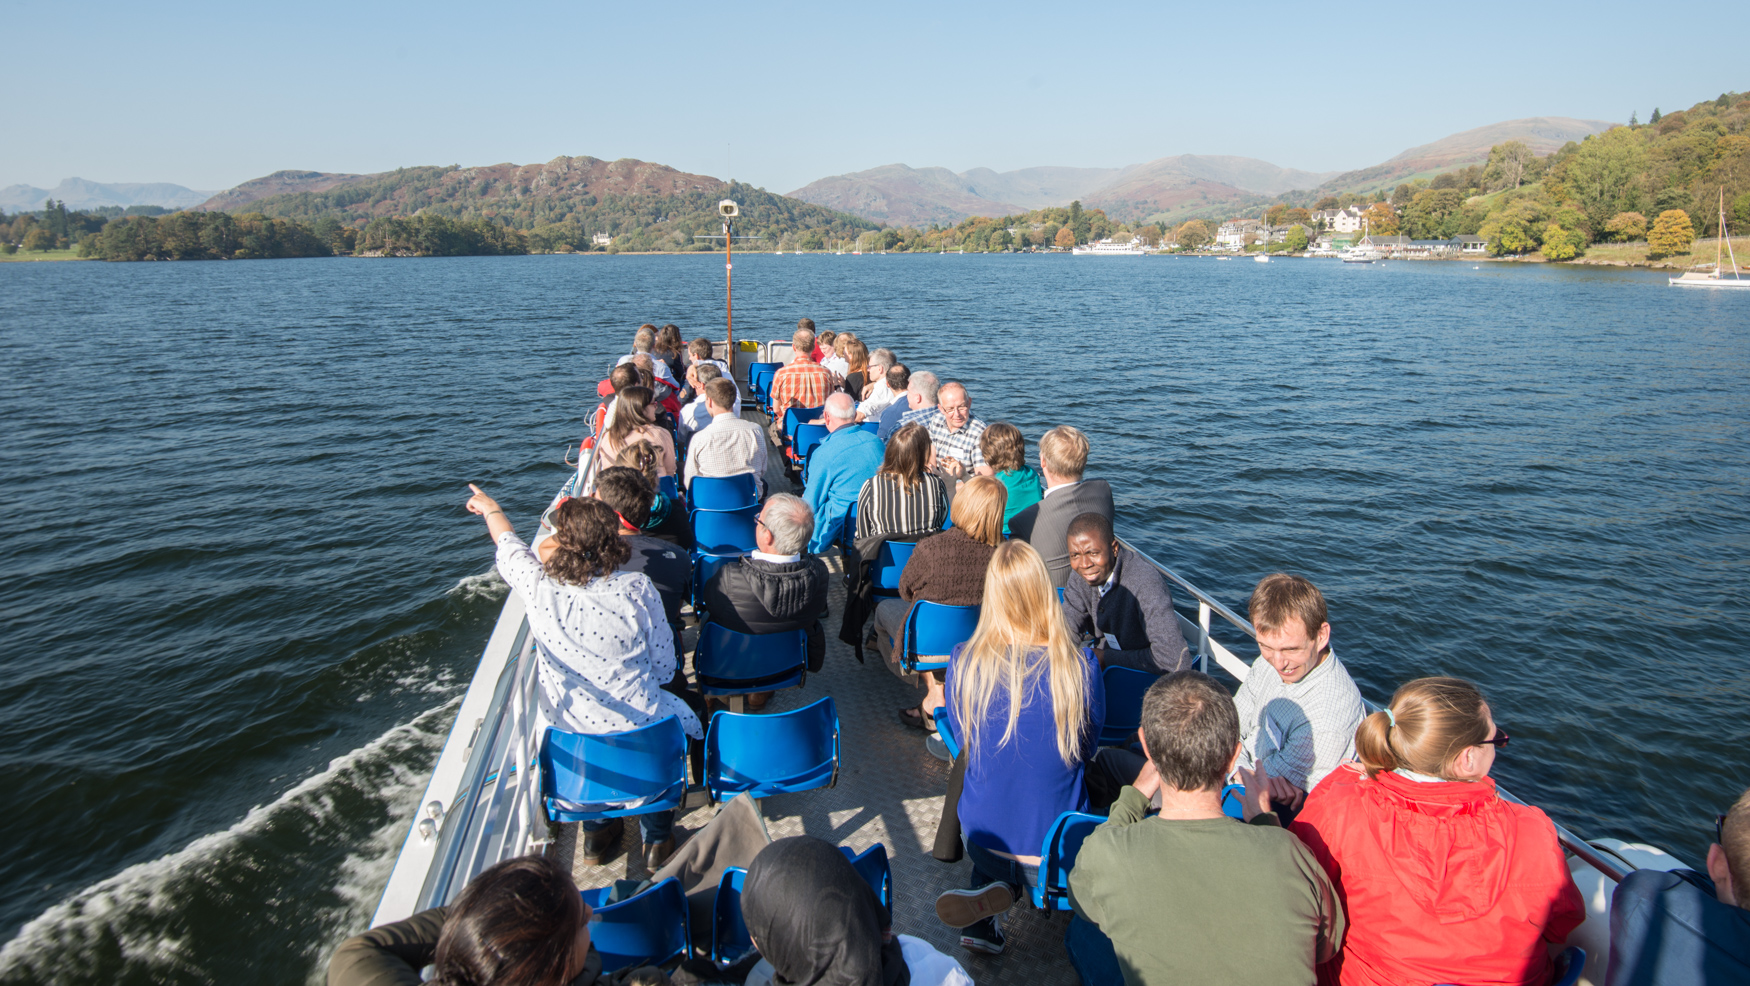 On Windermere with Ensemble, a team of environmental and data specilaists looking at ways of communicating climate change through a five year fellowship program